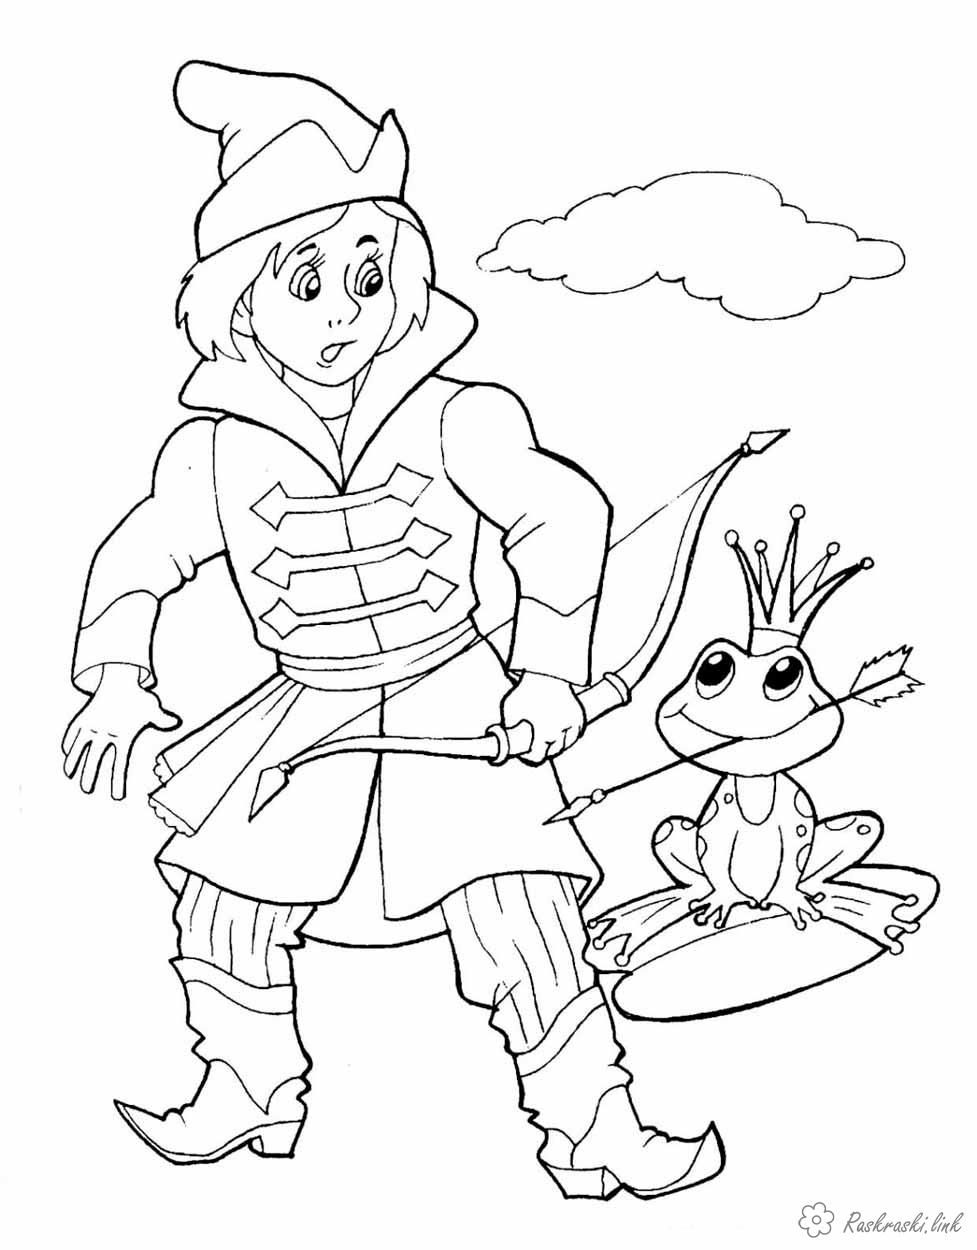 Coloring coloring pages of Russian fairy tales coloring pages tale Ivan Tsarevich and Vasilisa the Beautiful